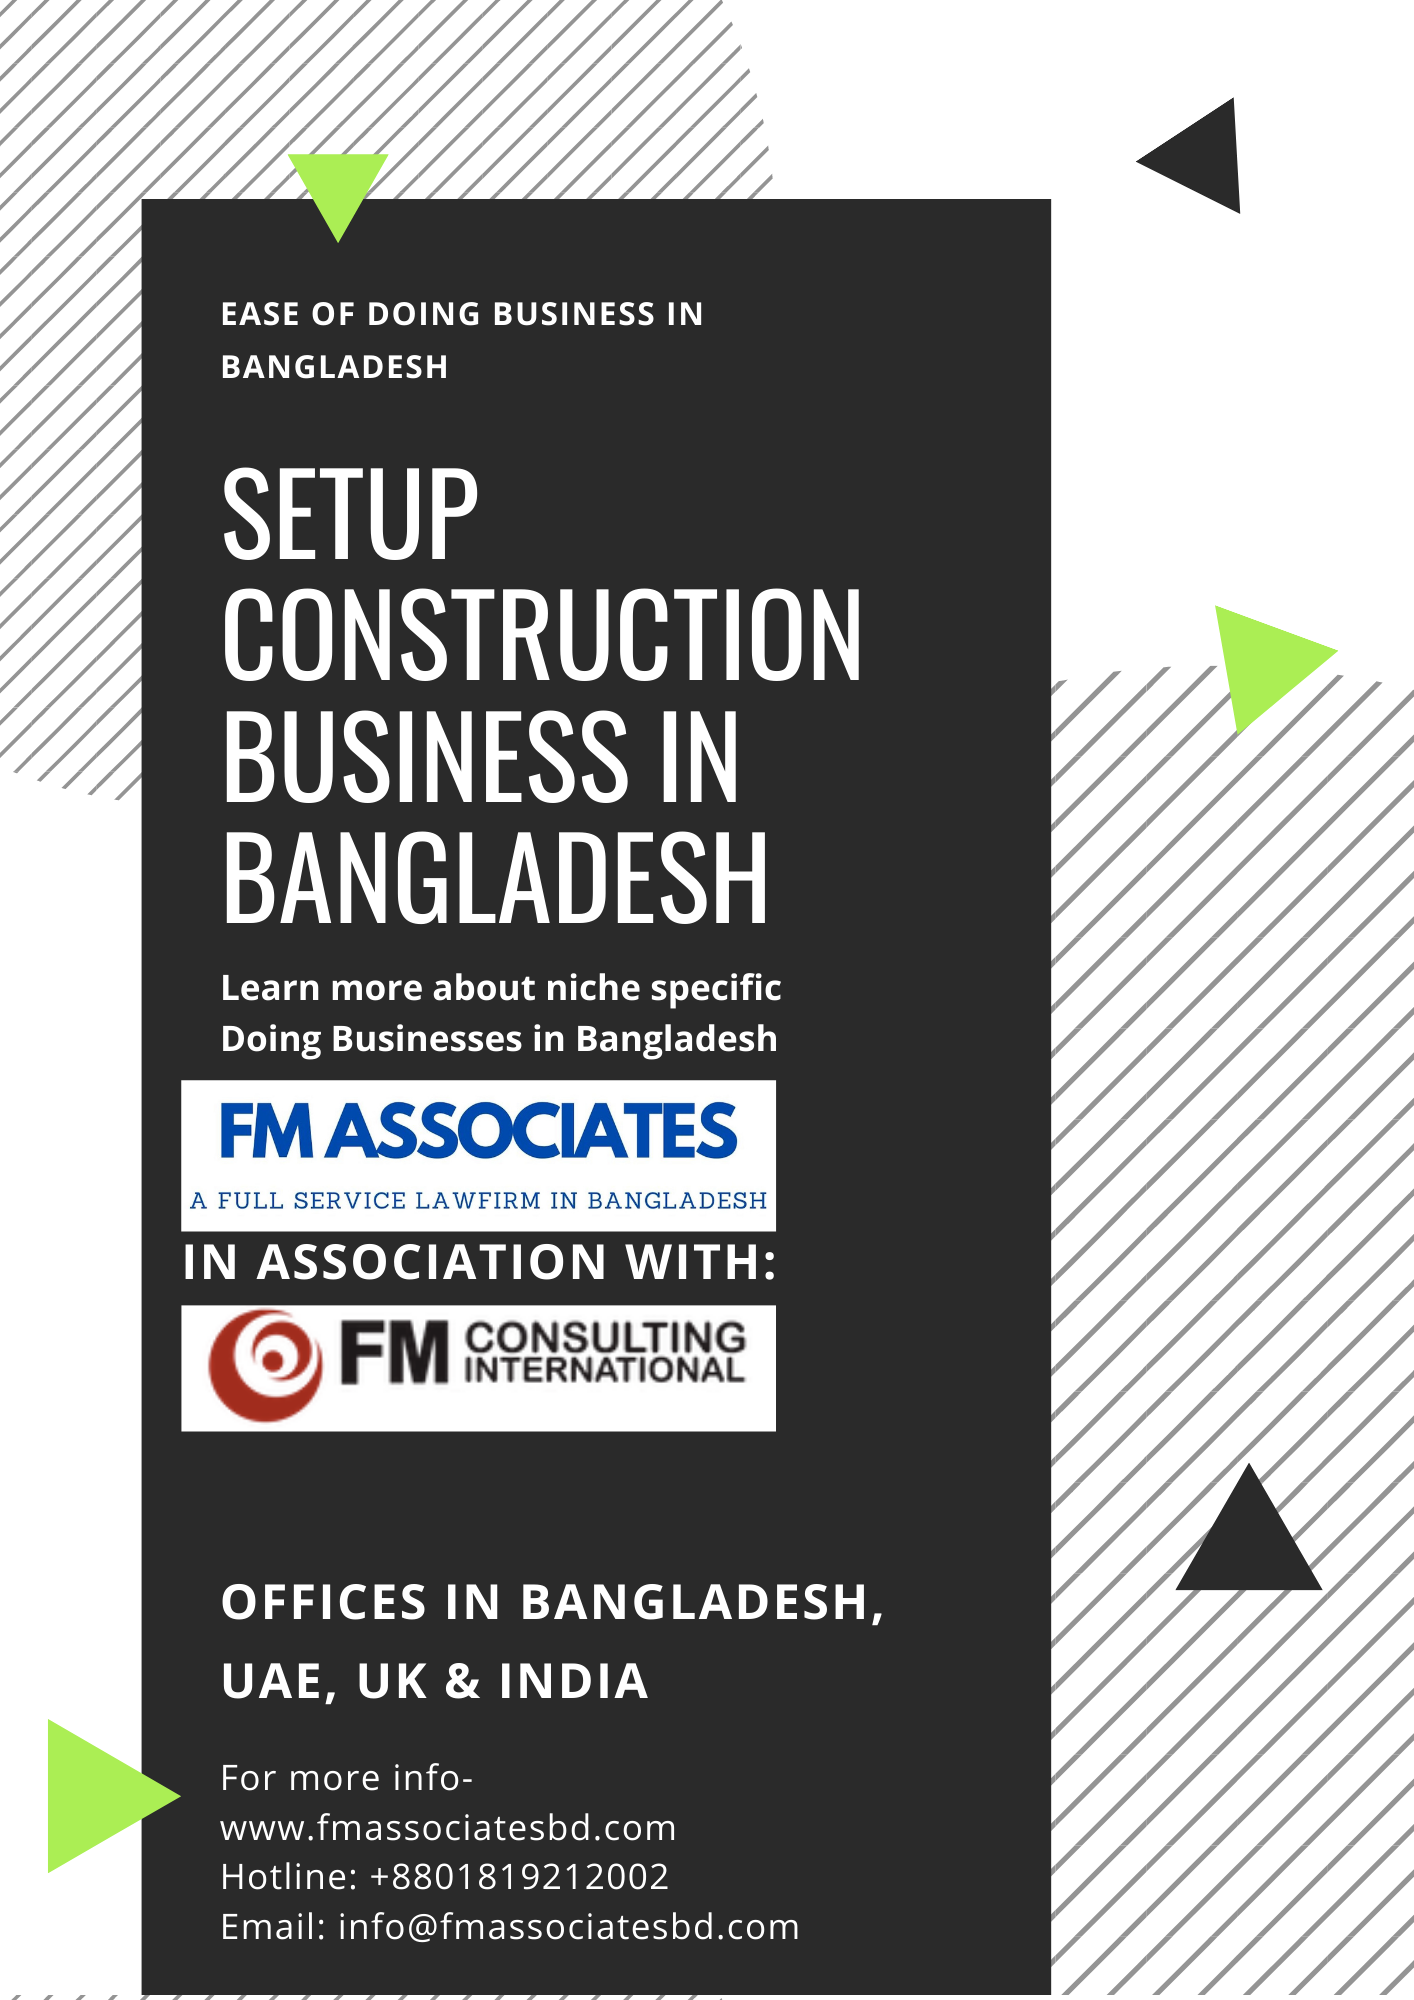 How to Setup Construction Business in Bangladesh